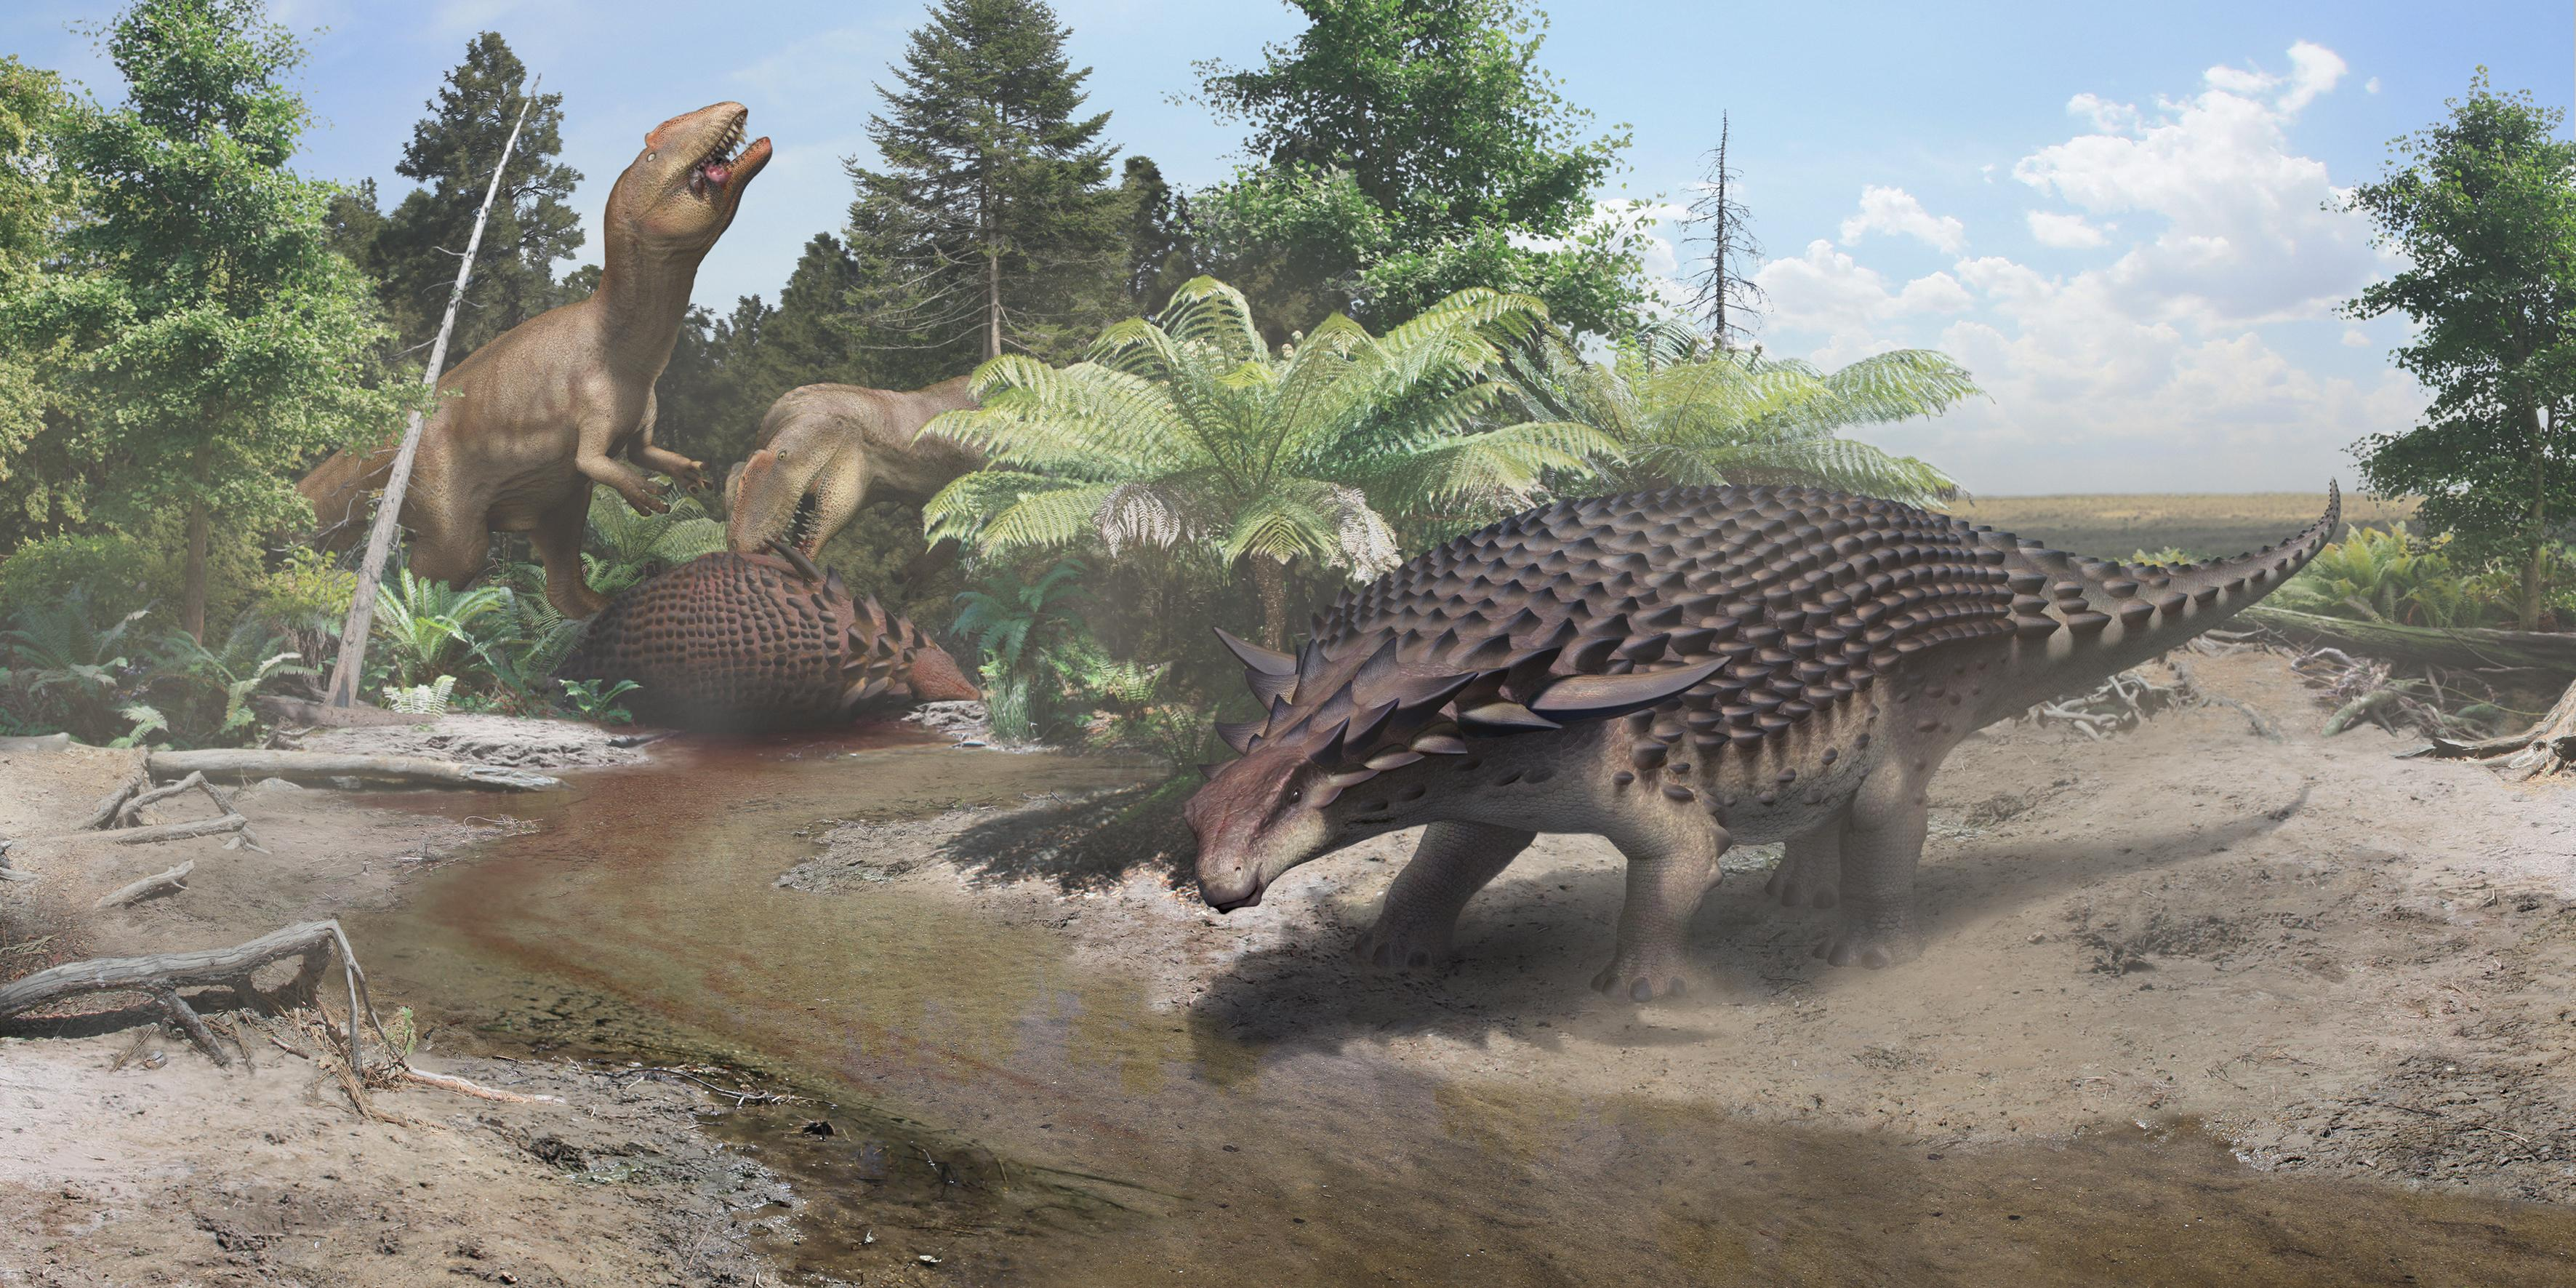 New Dinosaur Species, Scientists Say of Nearly Perfect Fossil